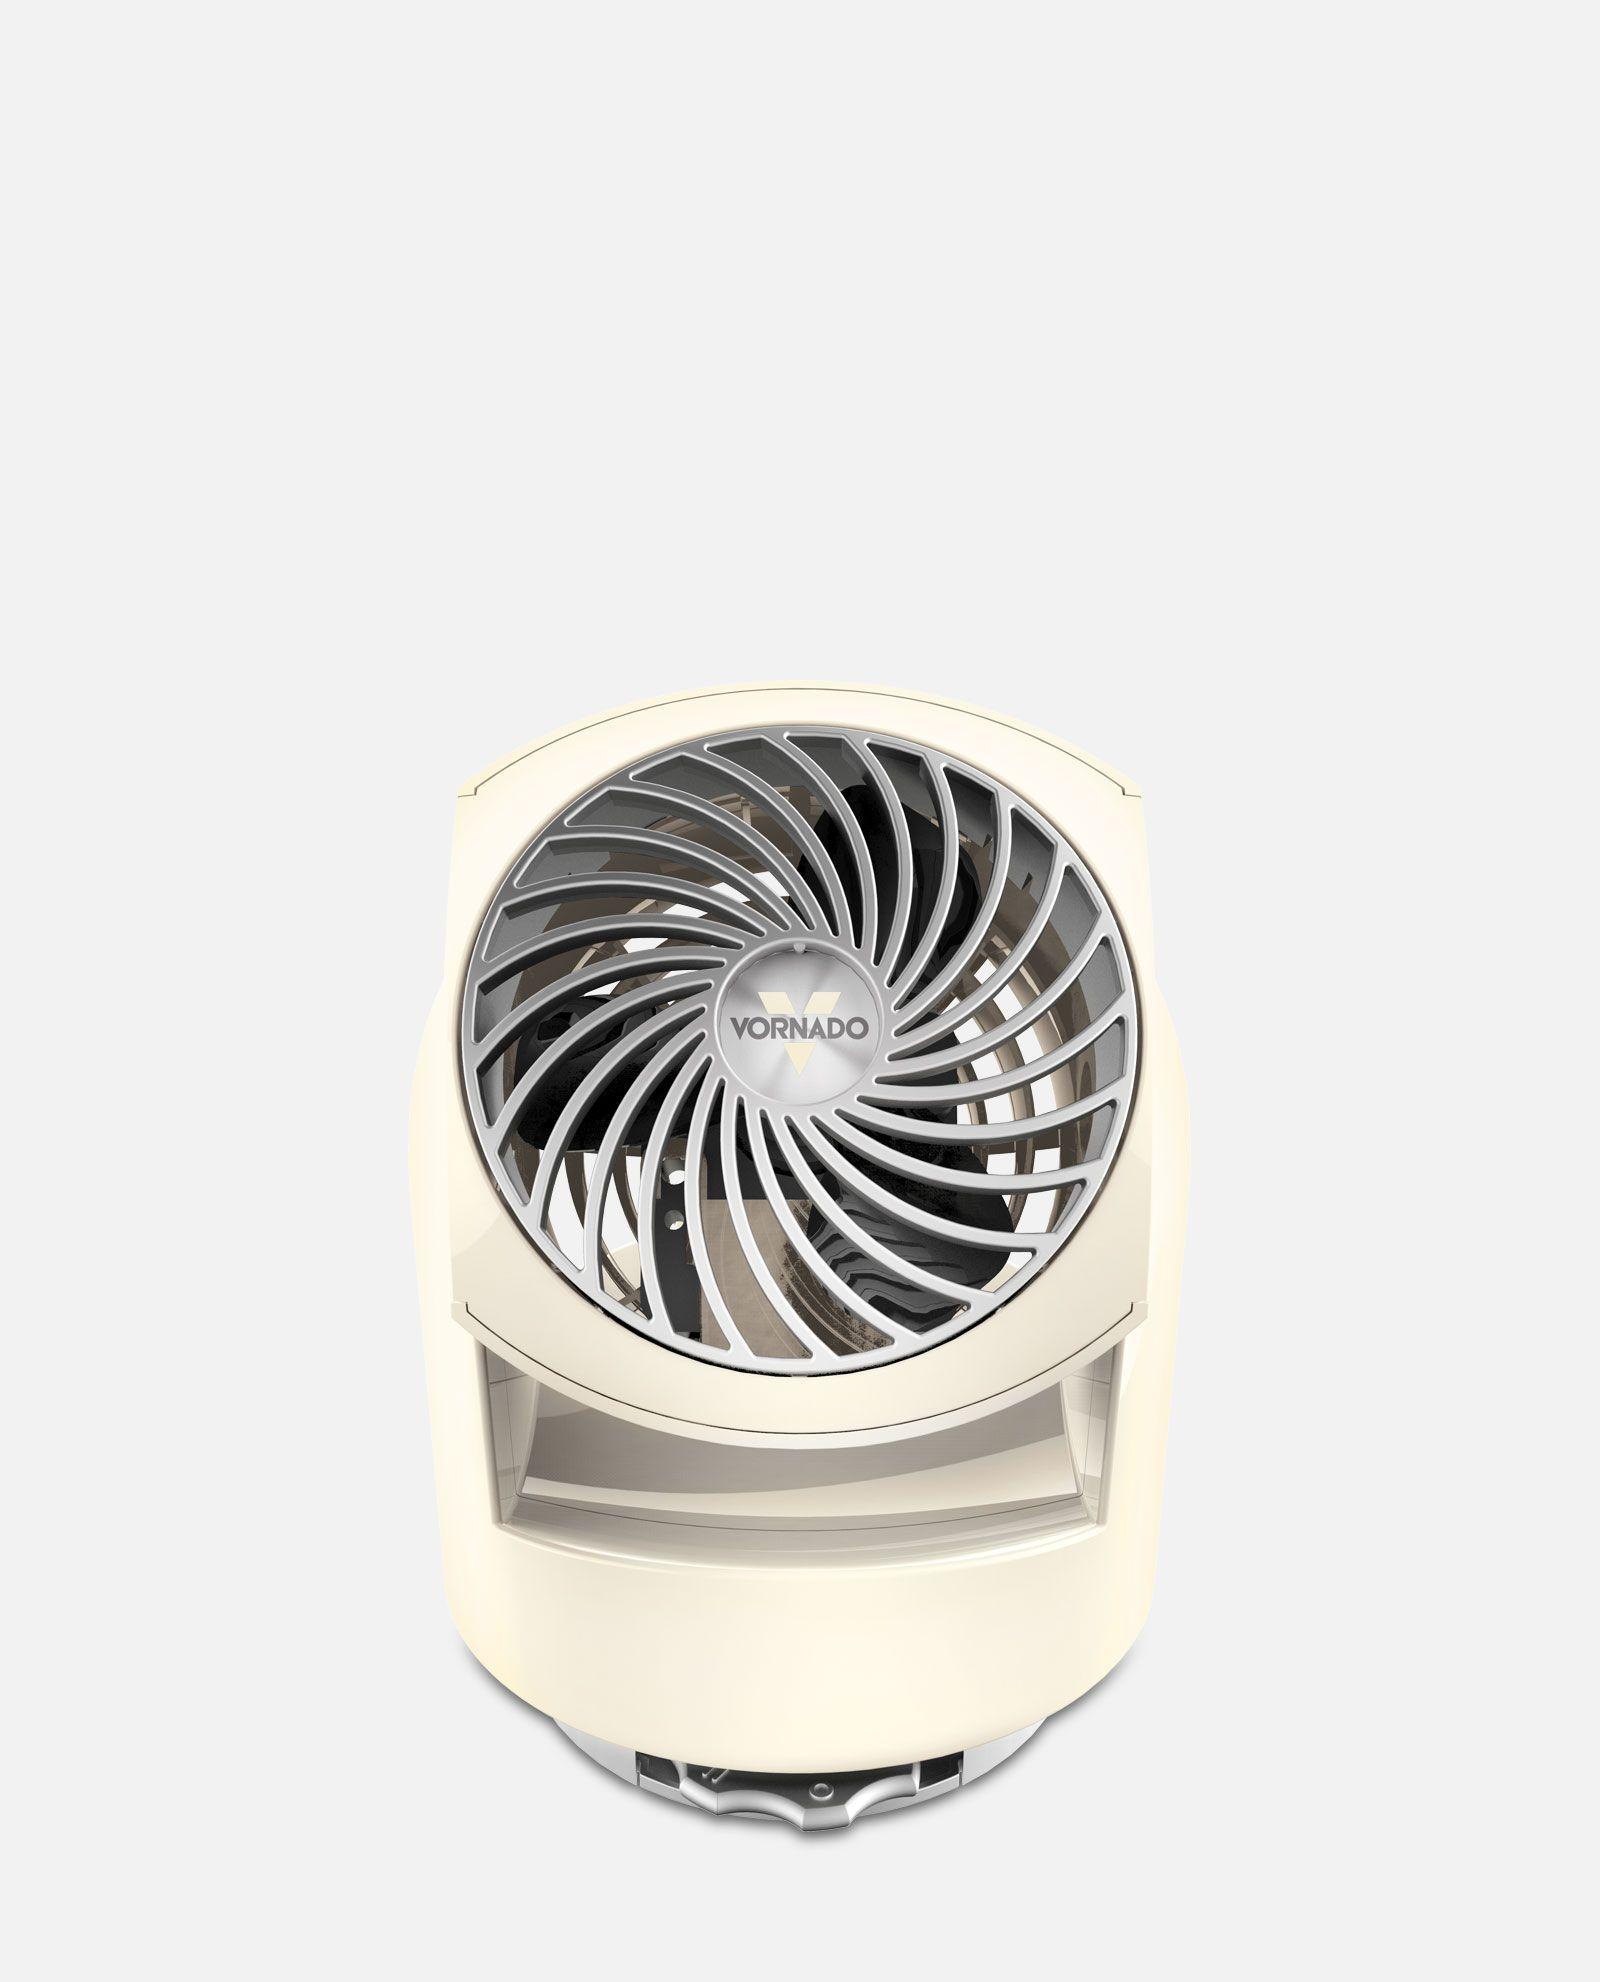 vornado space heater home and furnitures reference vornado space heater home gt shop gt circulators amp fans gt personal